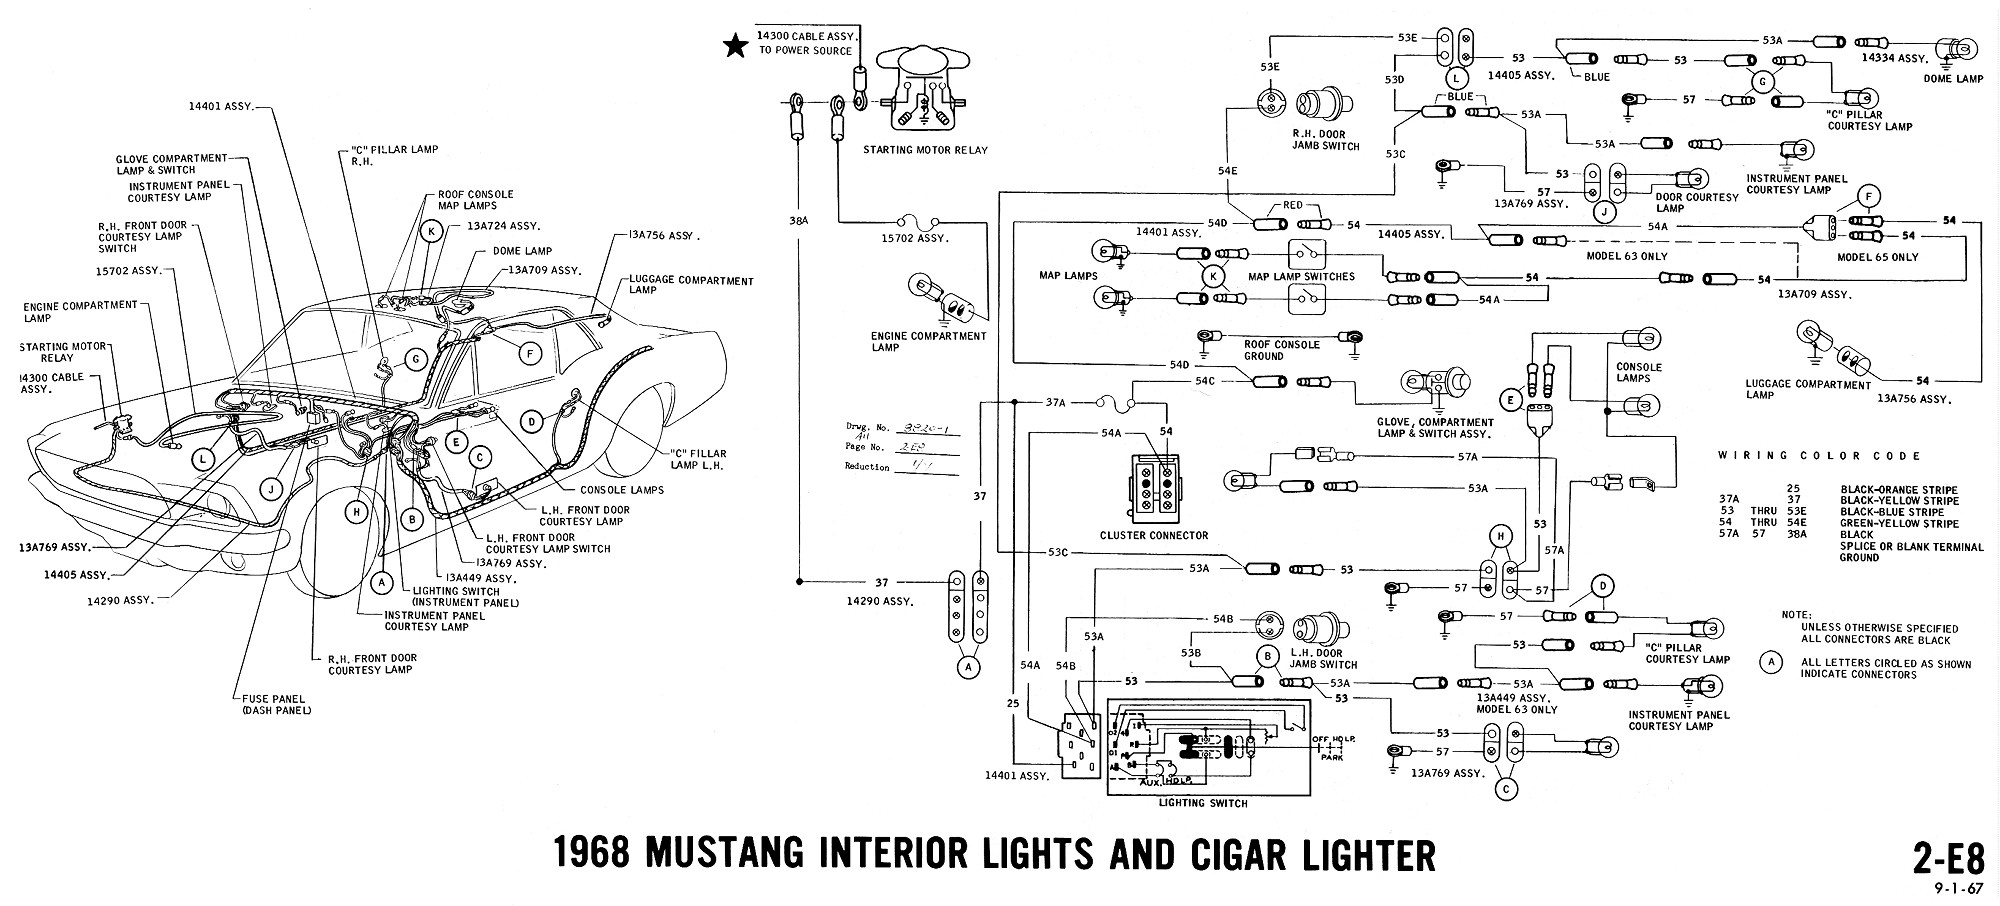 Admirable 1965 Ford Mustang Wiring Wiring Diagram Wiring Digital Resources Lavecompassionincorg